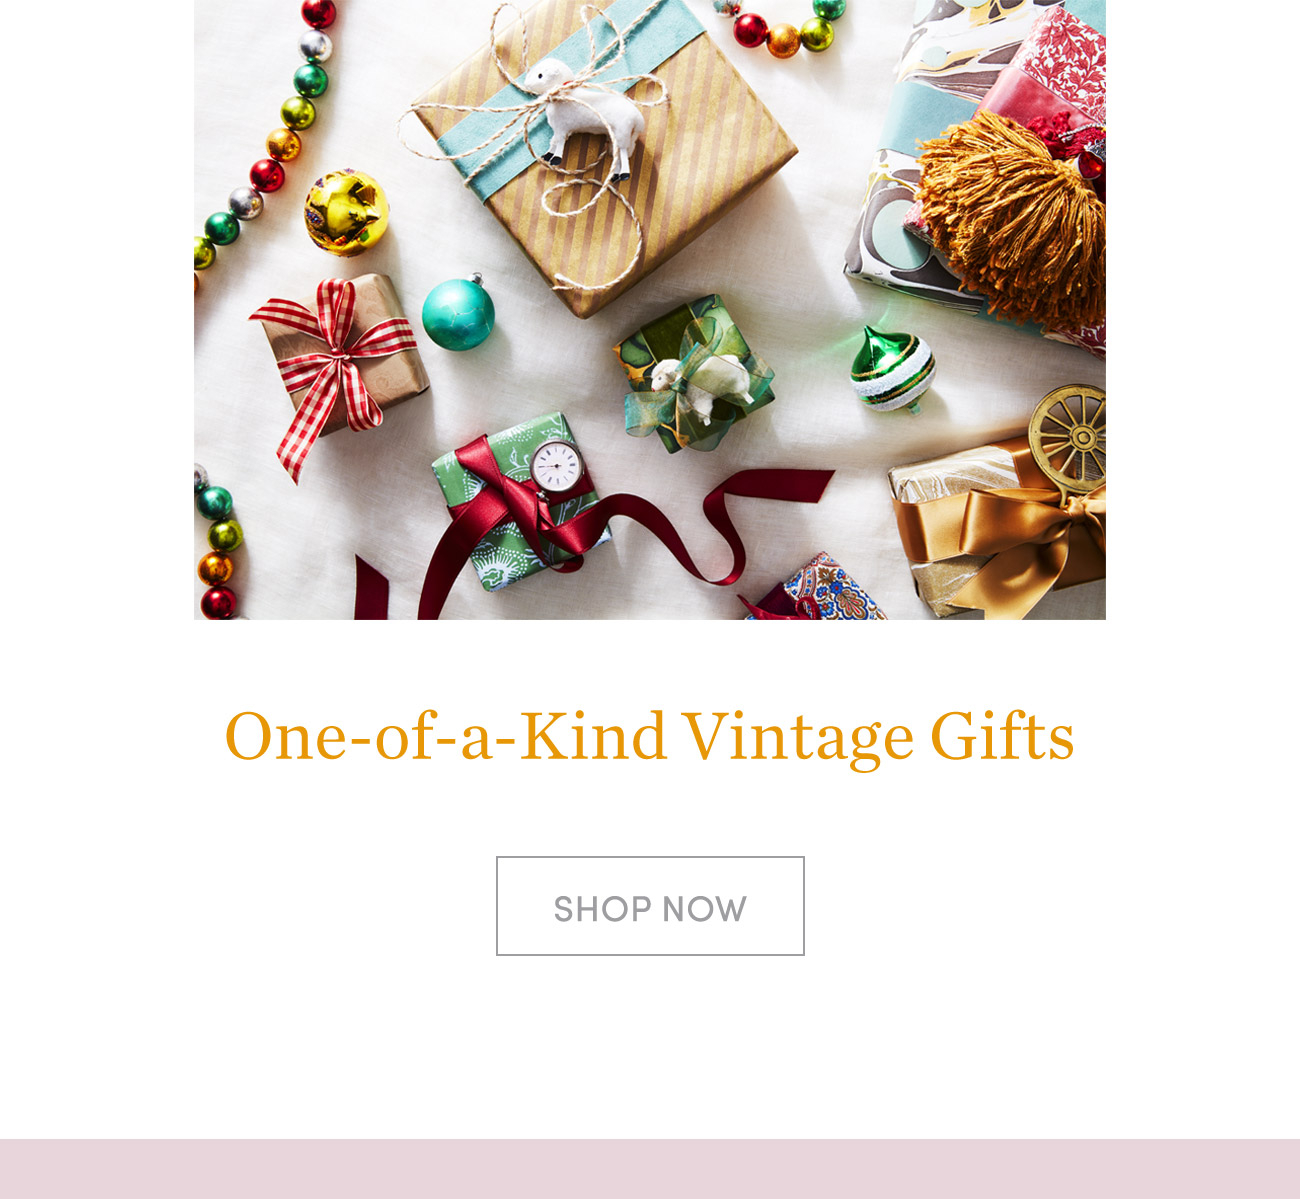 One-of-a-Kind Vintage Gifts >